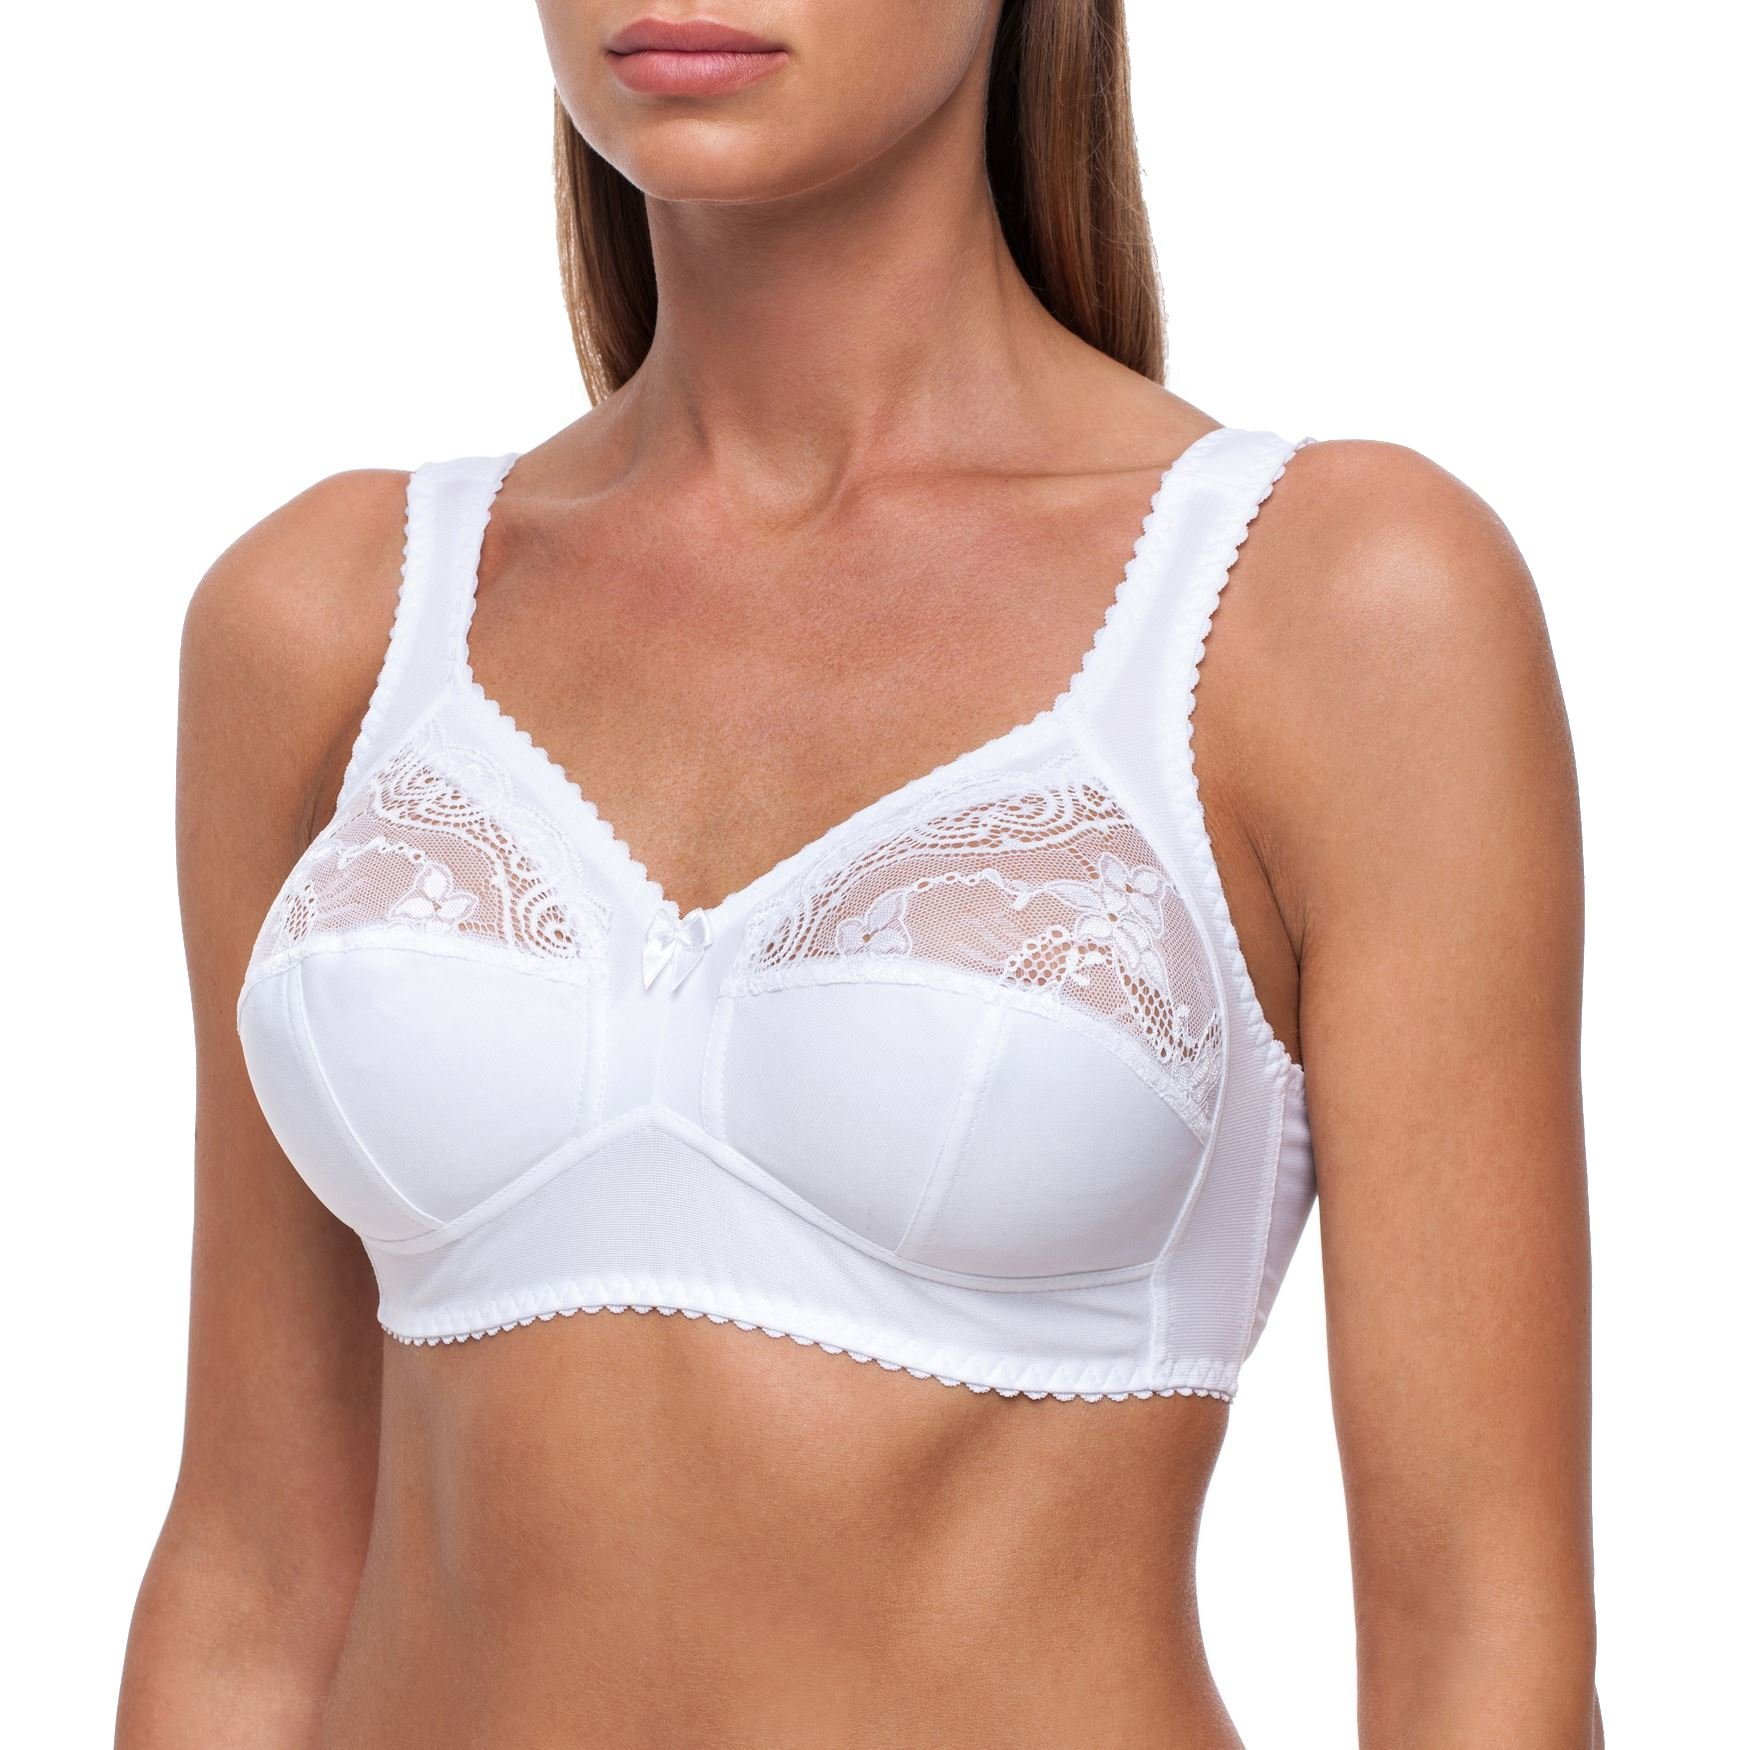 frugue Women's Wireless Plus Size Unlined Minimizer Full Coverage Bra